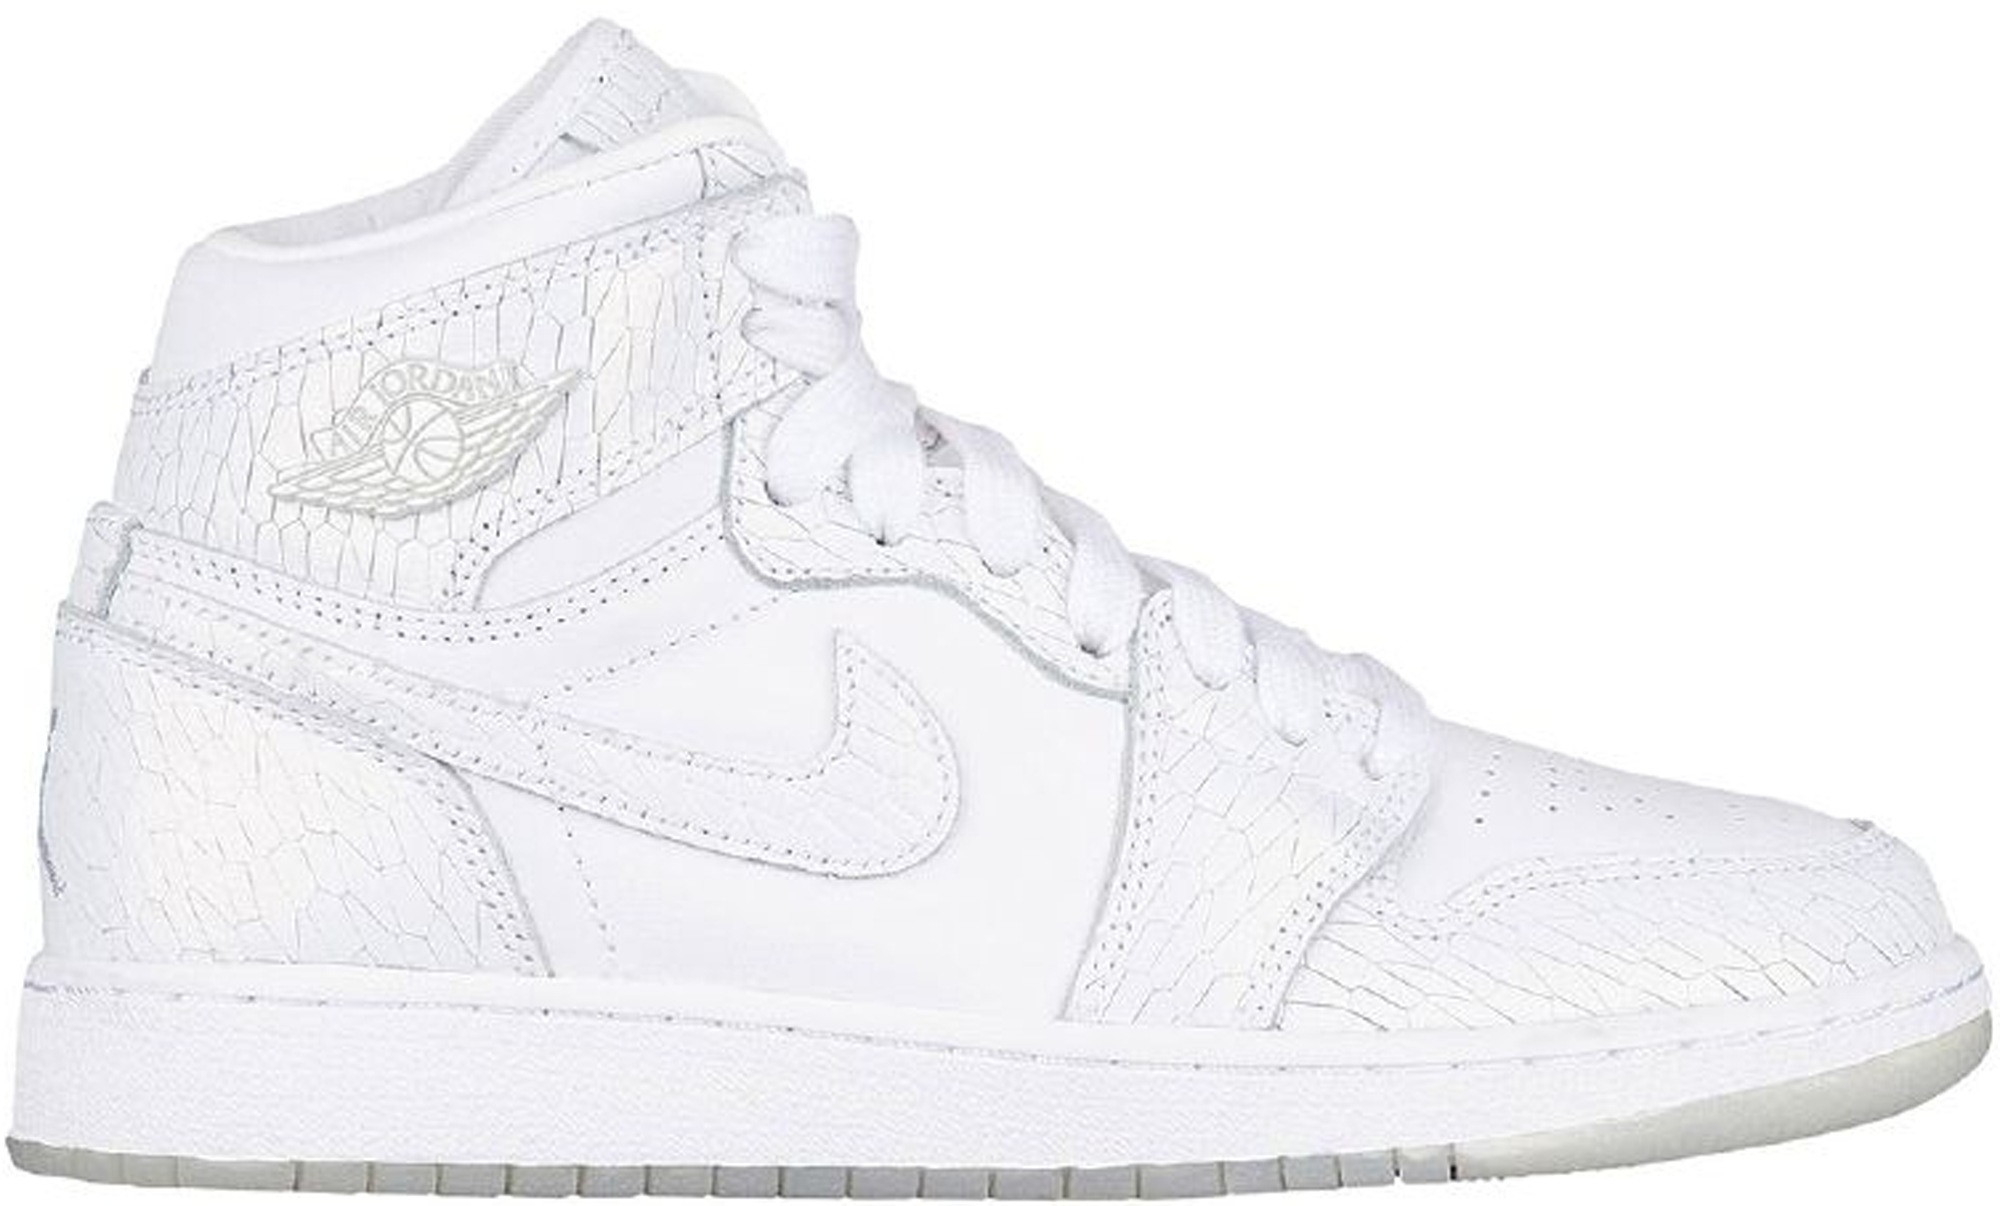 11af0cfce1c0 Girls Air Jordan 1 Retro High Premium HC GG White Pure Platinum GS Frost  White Heiress